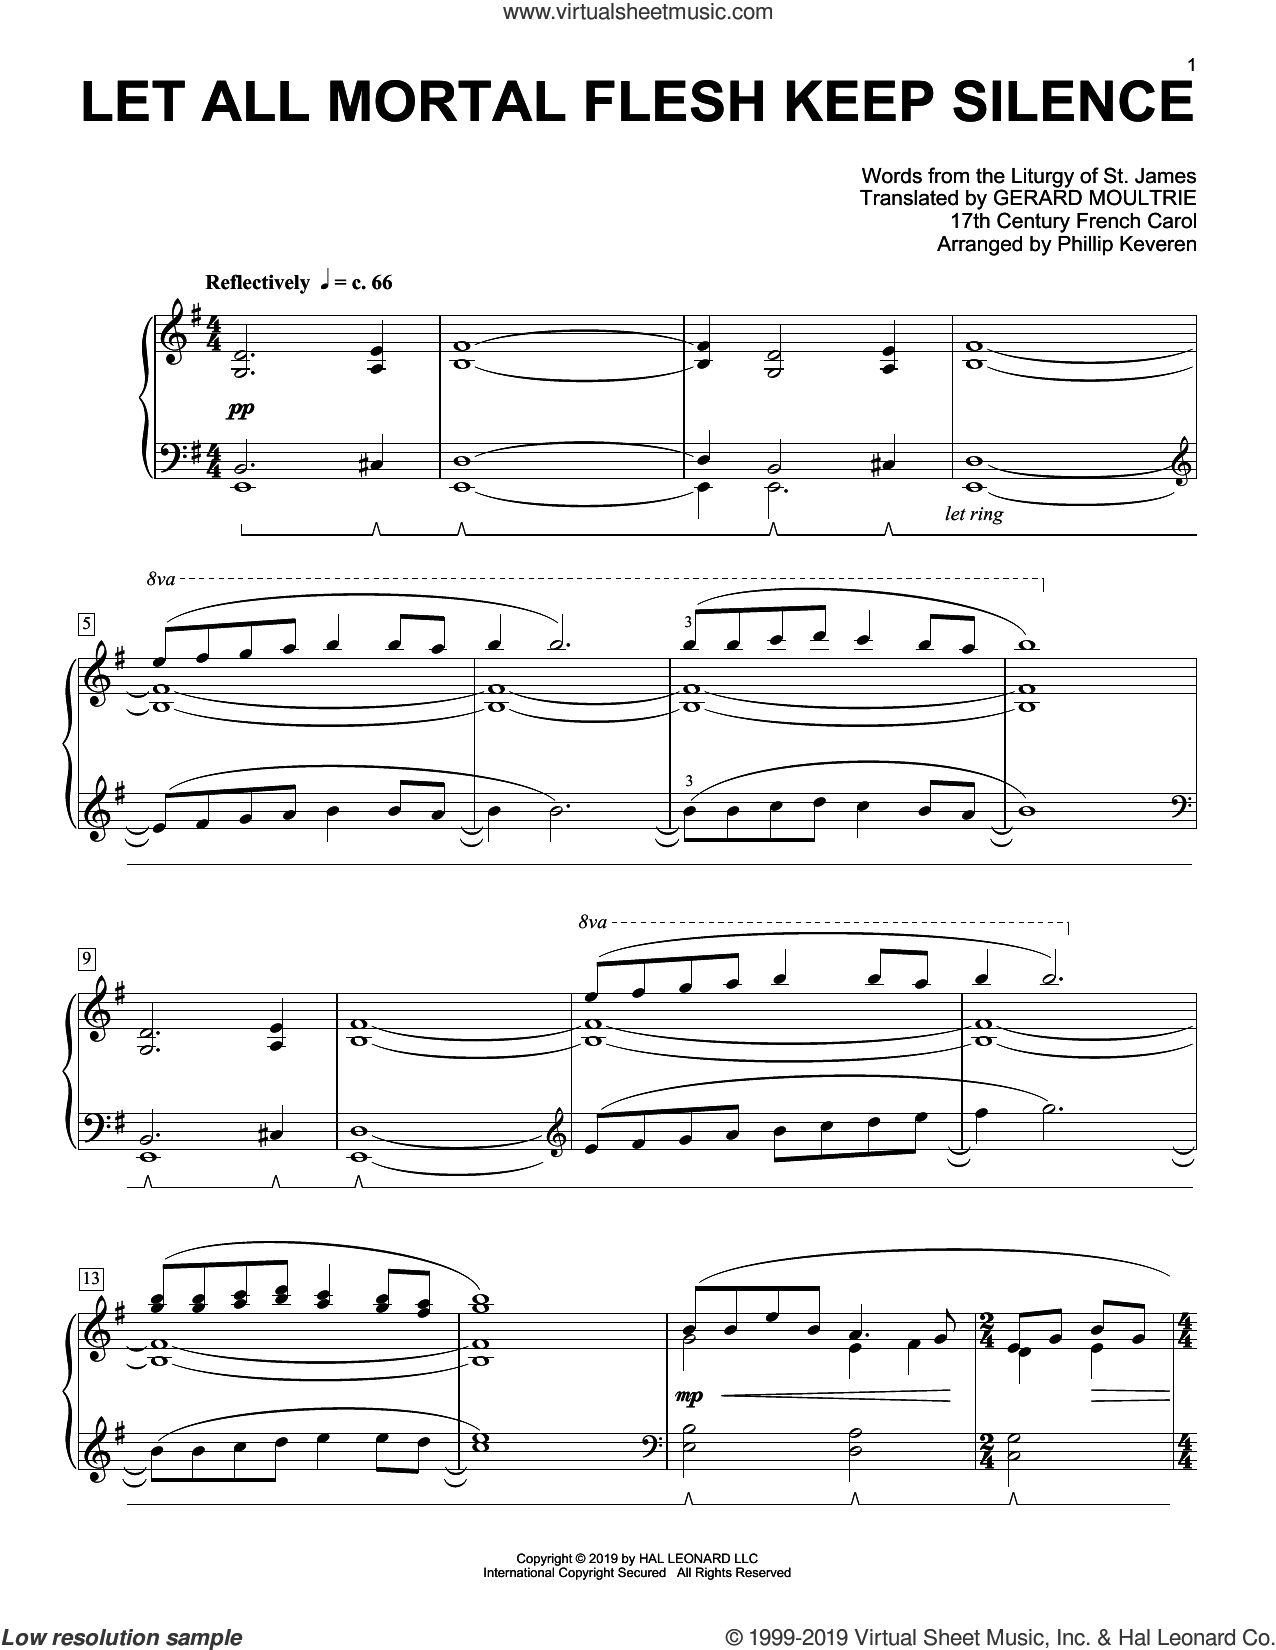 Let All Mortal Flesh Keep Silence [Classical version] (arr. Phillip Keveren) sheet music for piano solo , Phillip Keveren, Gerard Moultrie and Liturgy Of St. James, classical score, intermediate skill level